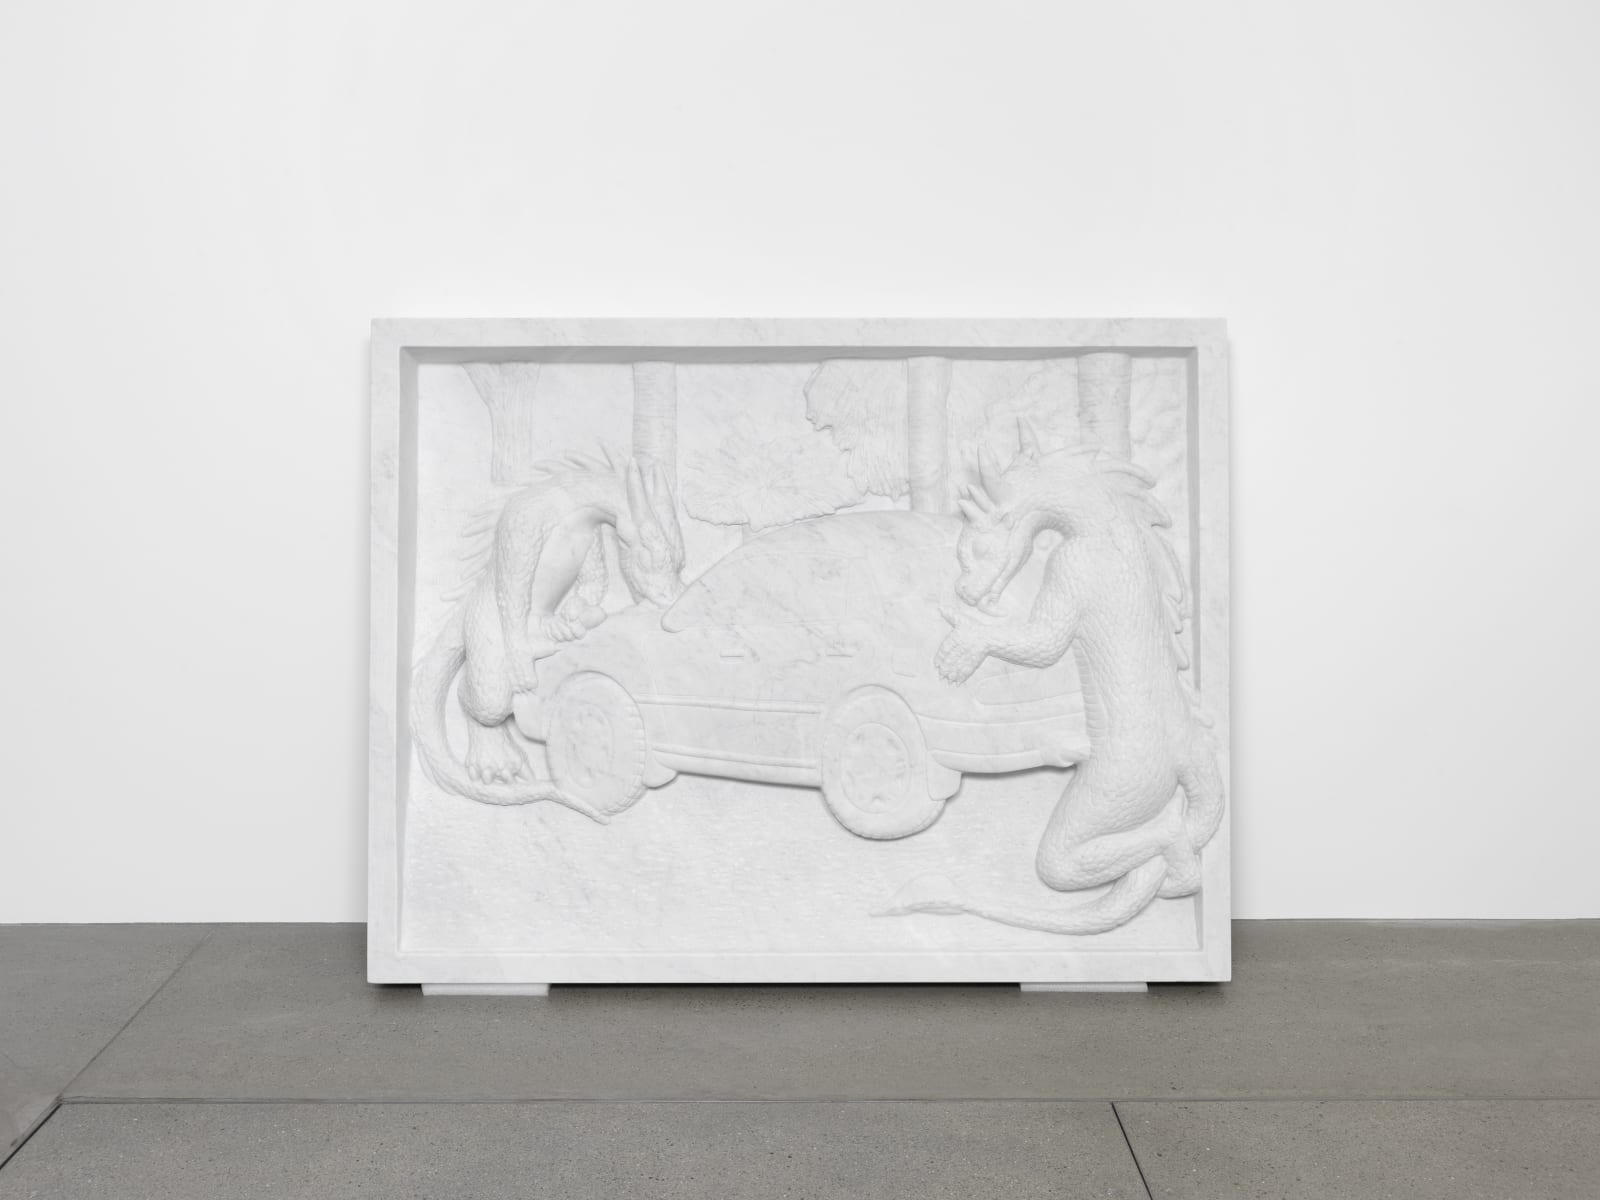 Jon Rafman, Dragons Fucking Car I (Relief), 2016